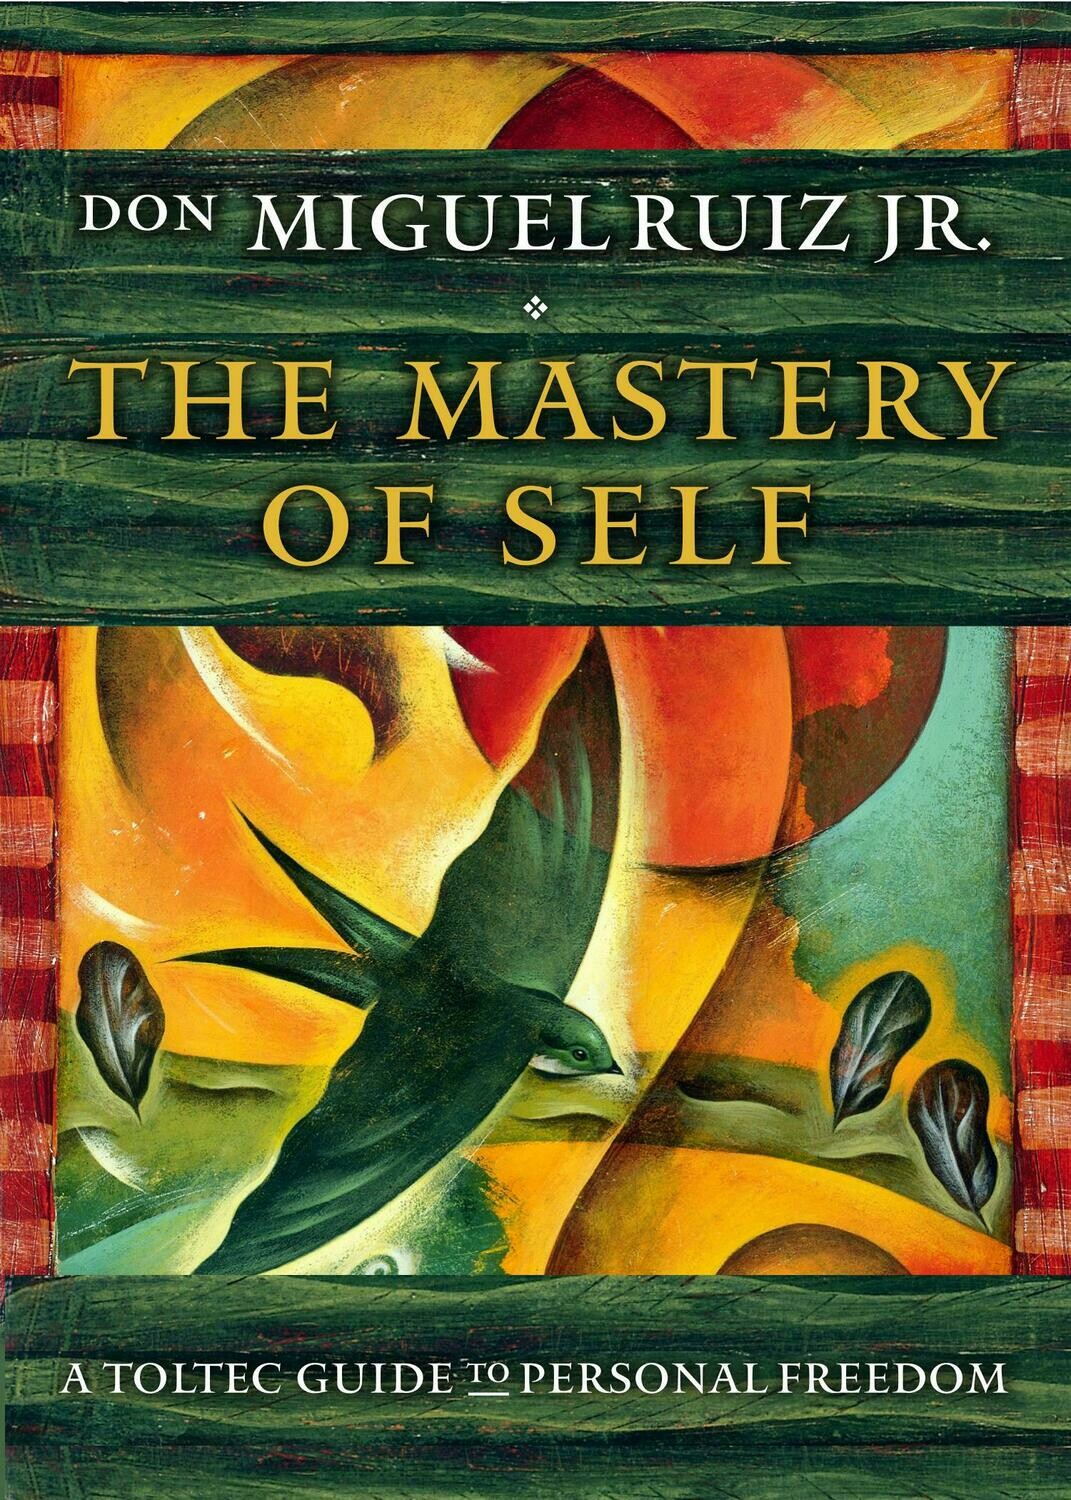 Book Club Special - The Mastery of Self